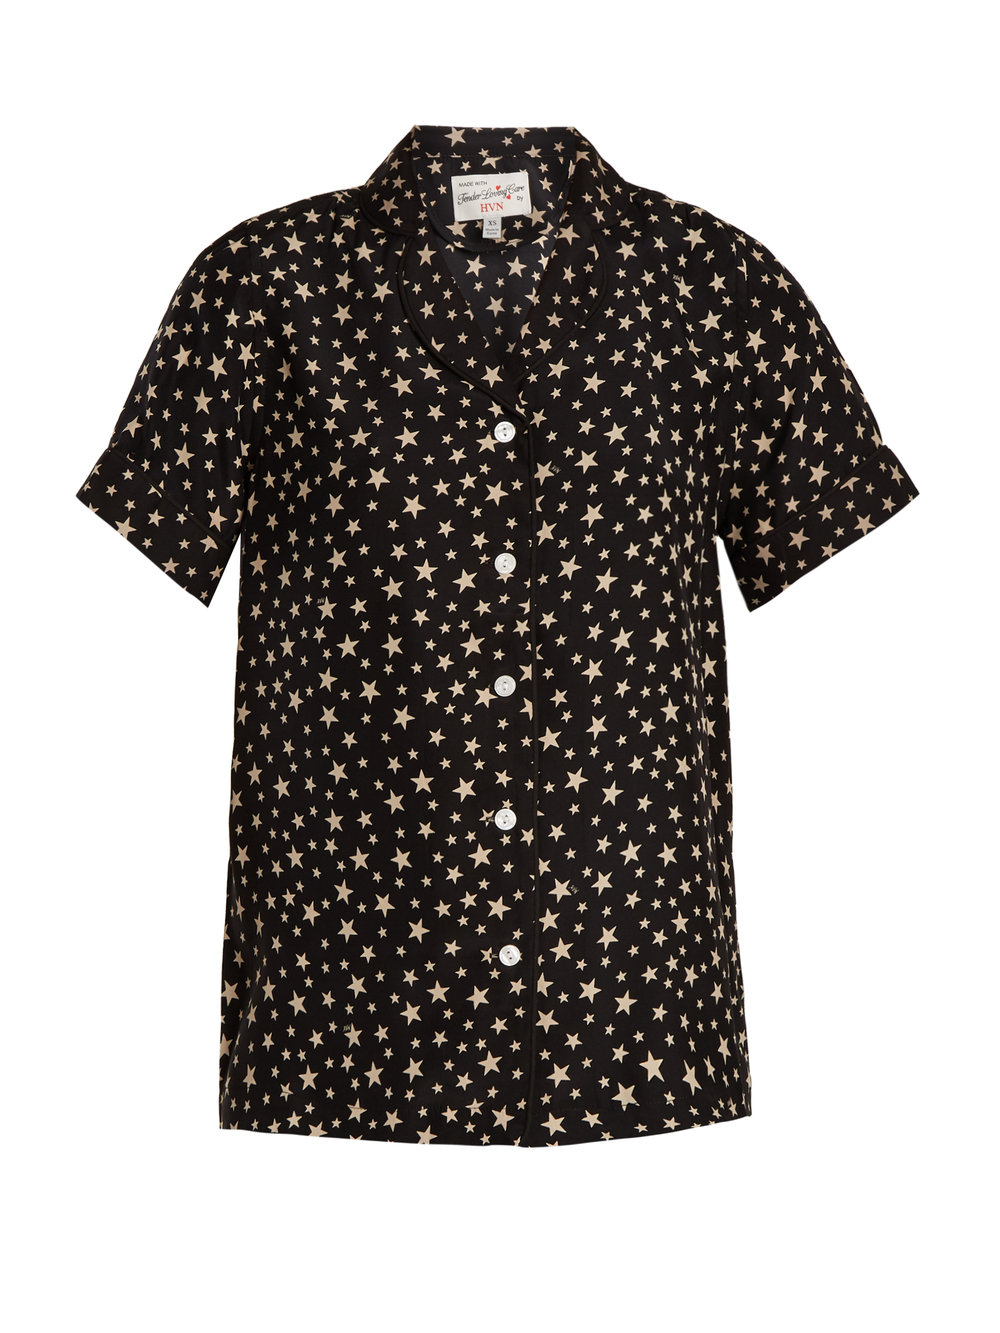 BLACK STAR - SHOP NOW